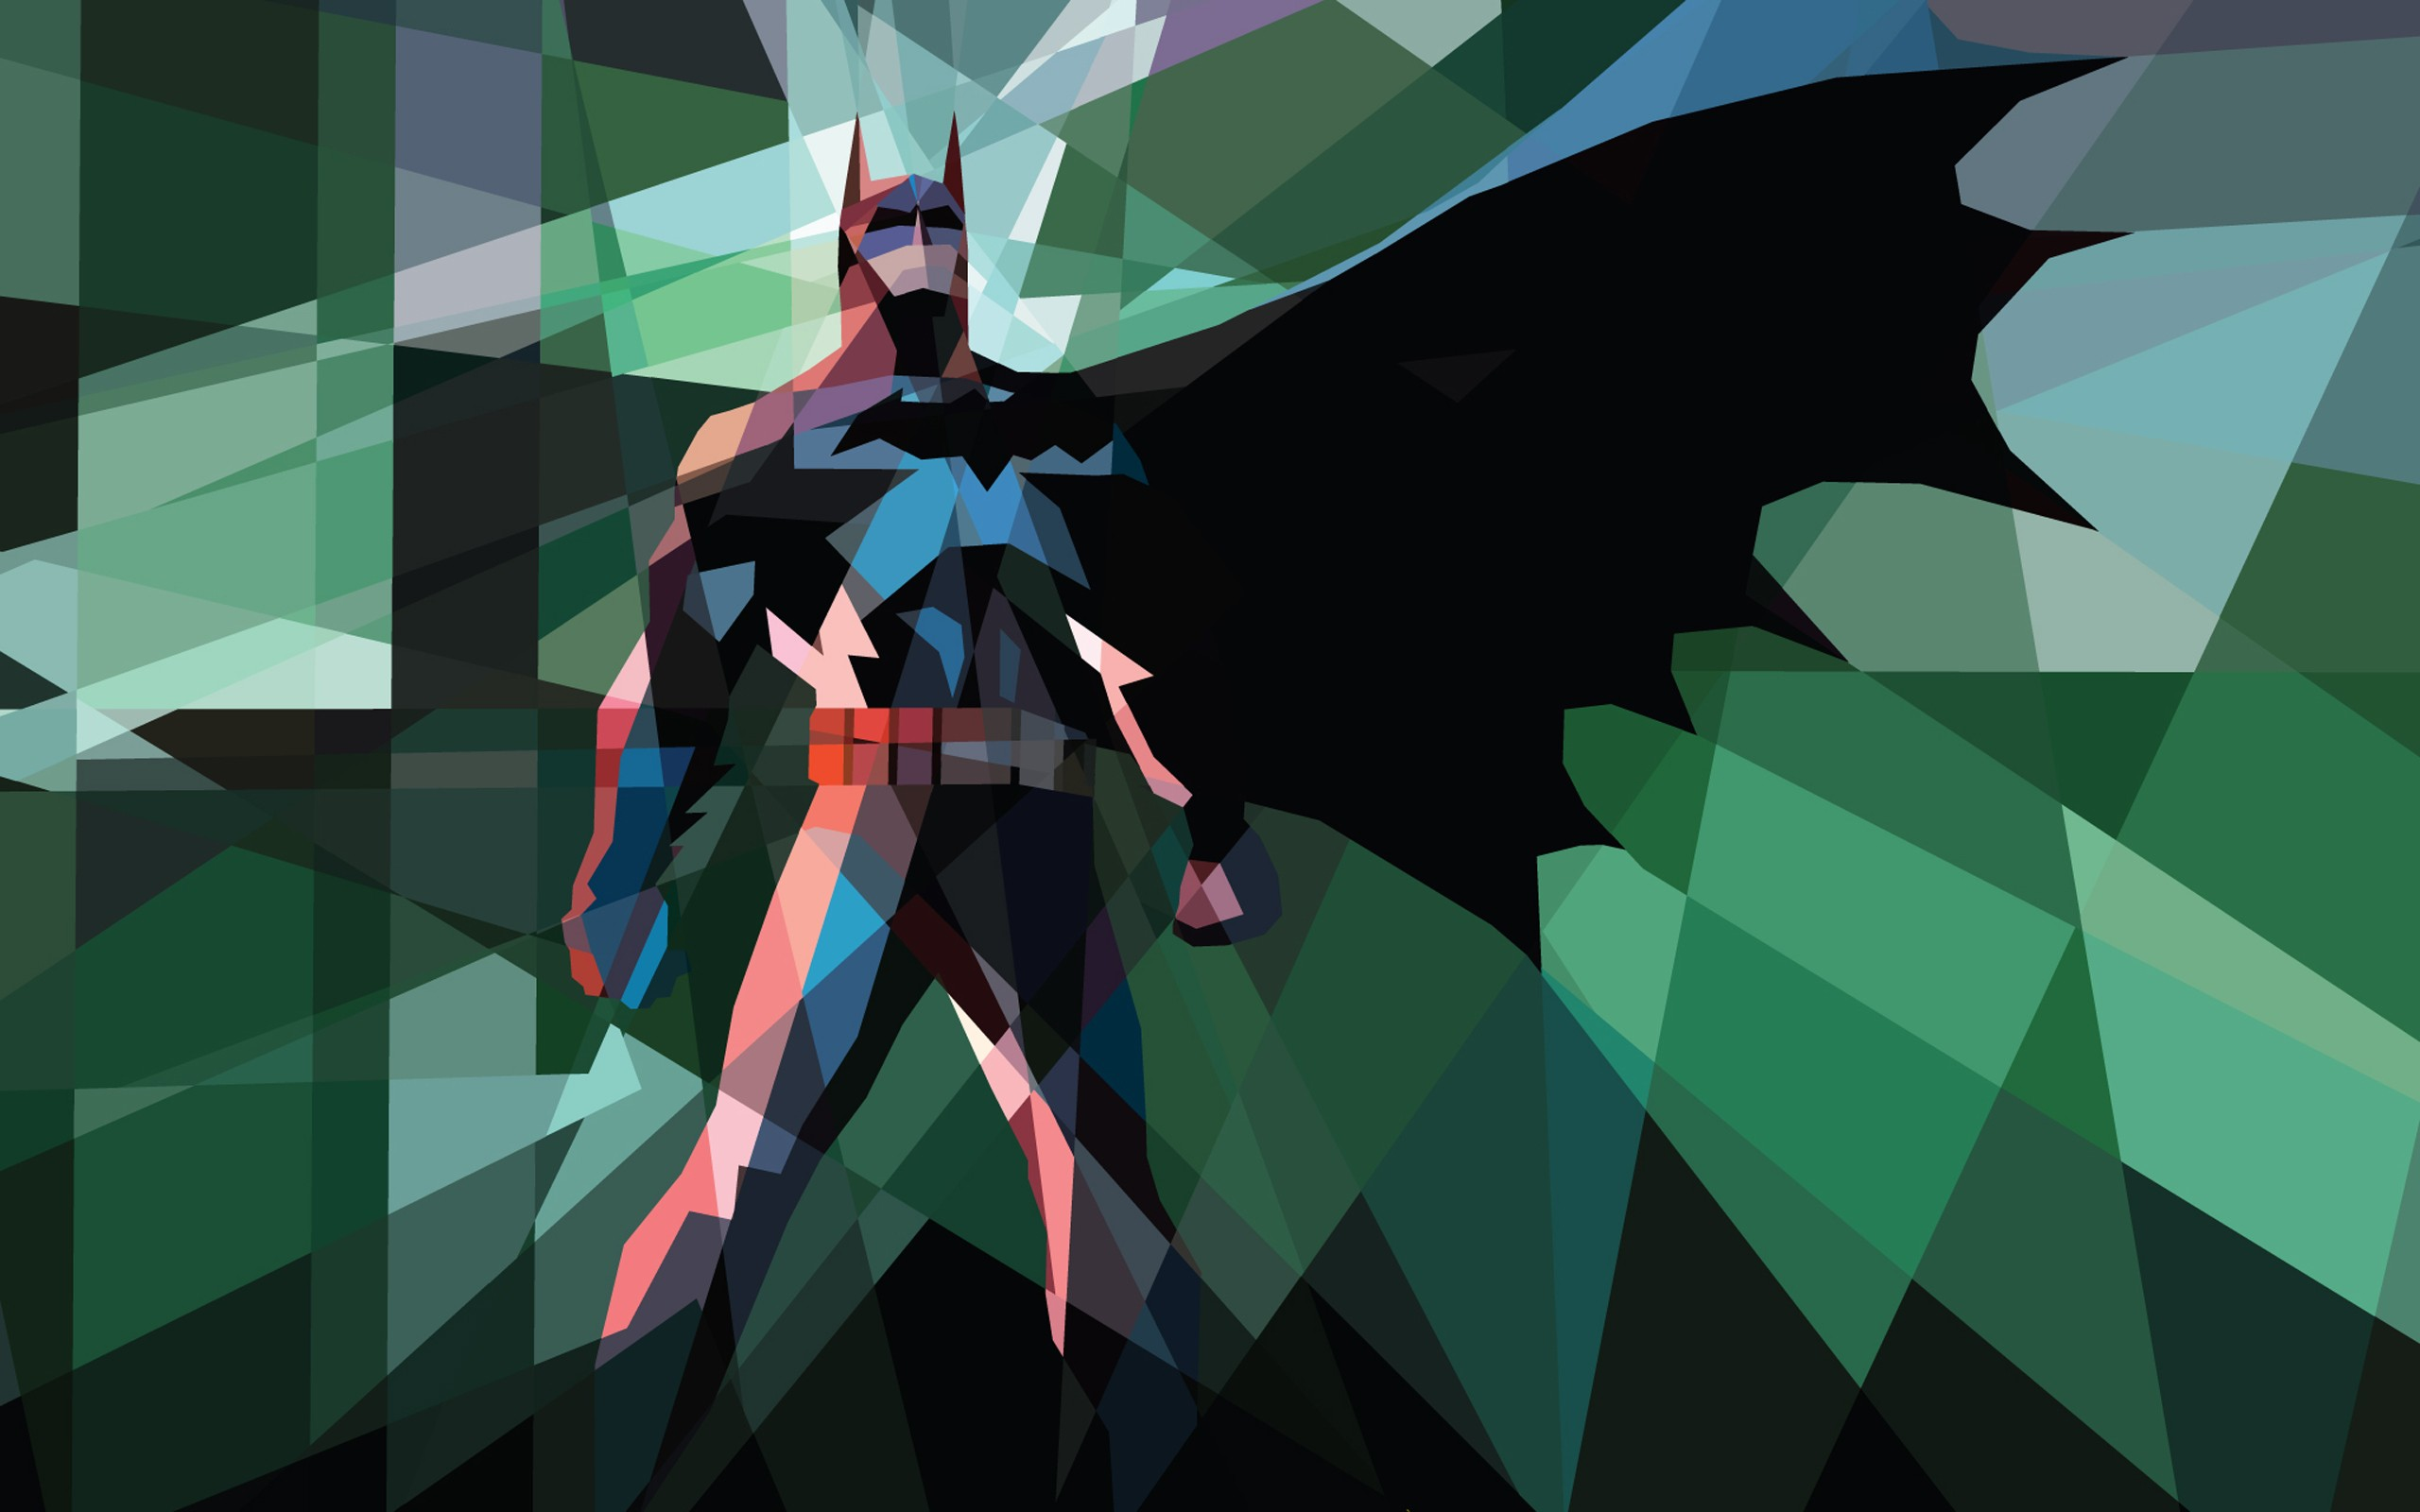 ng dng   Android Wallpaper Low Poly Art Congnghe5giayvn 2560x1600